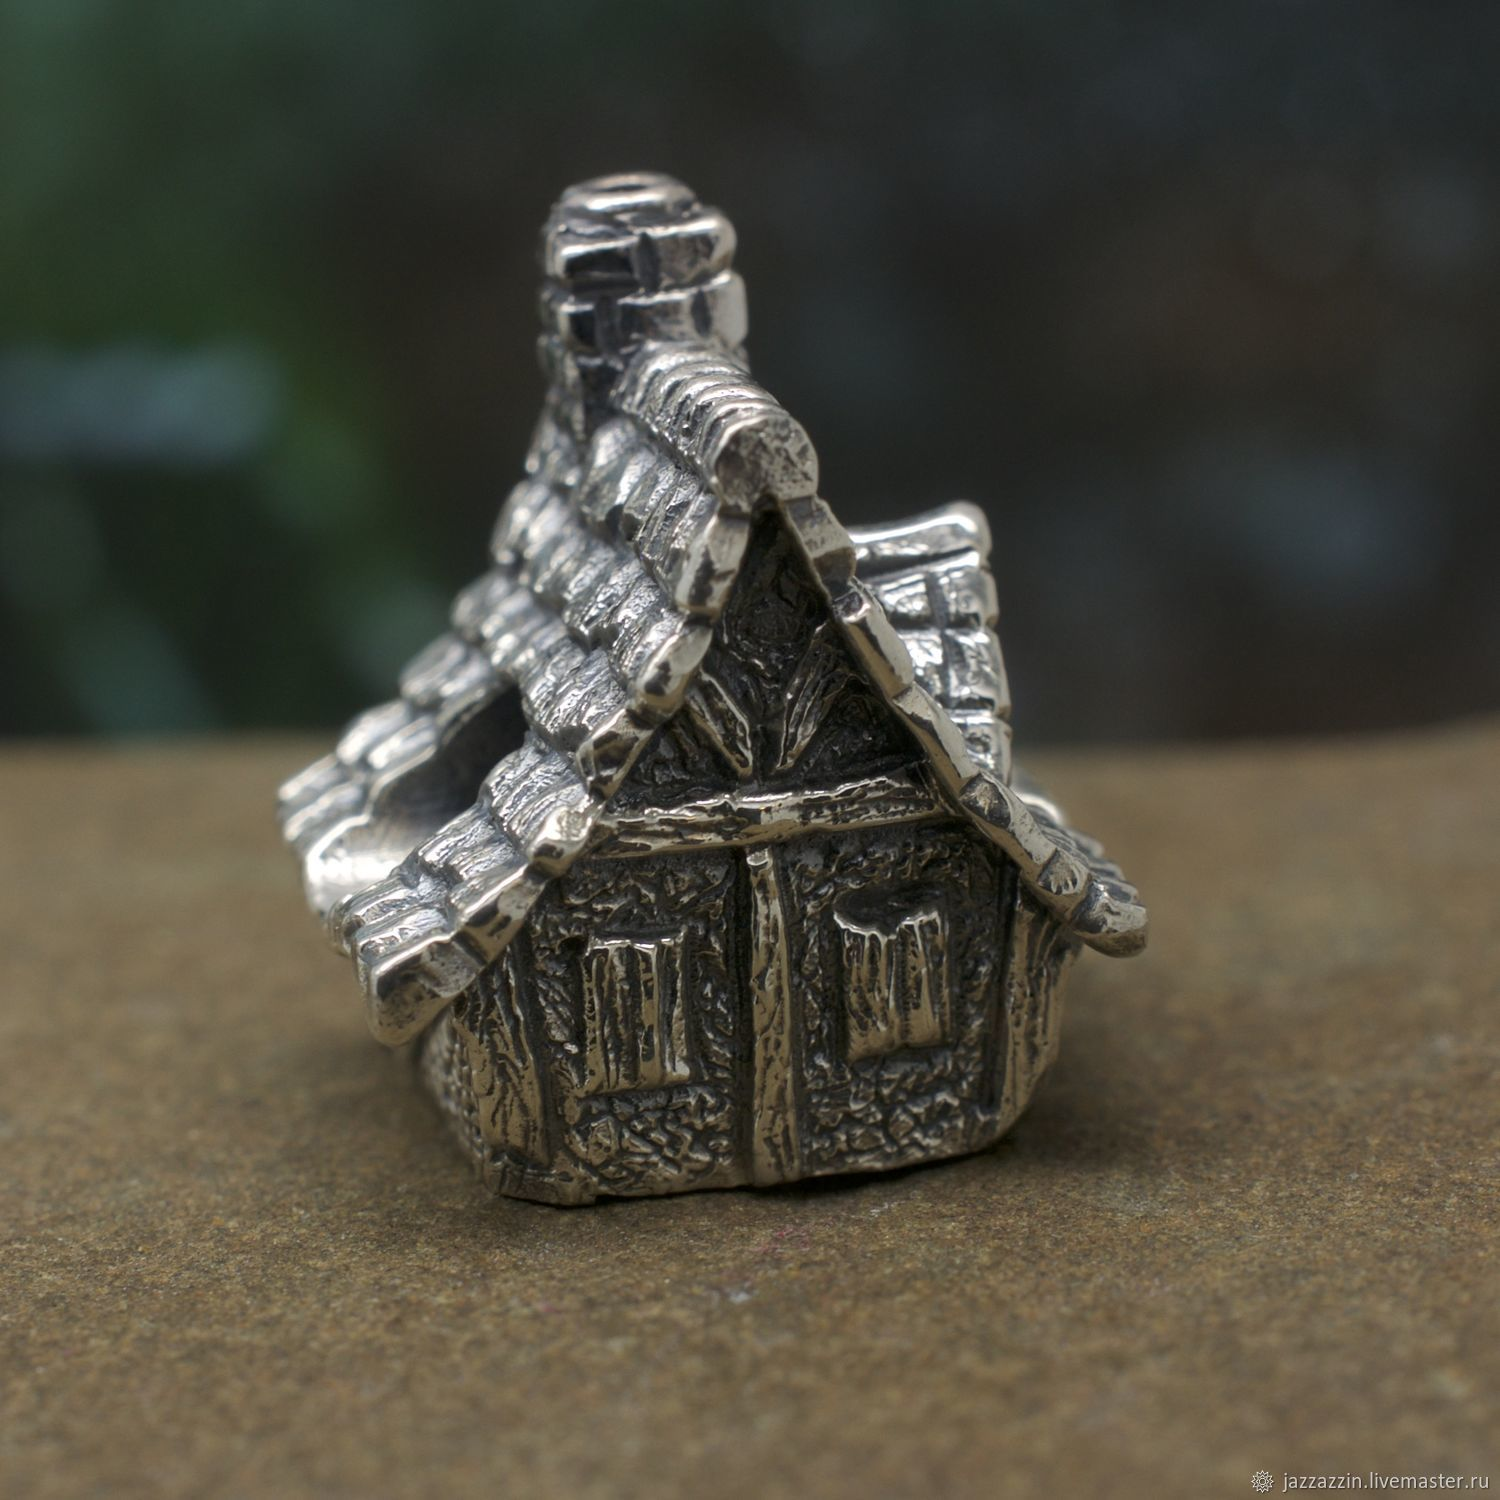 Witch house charm shop online on livemaster with for Craft and jewelry supplies